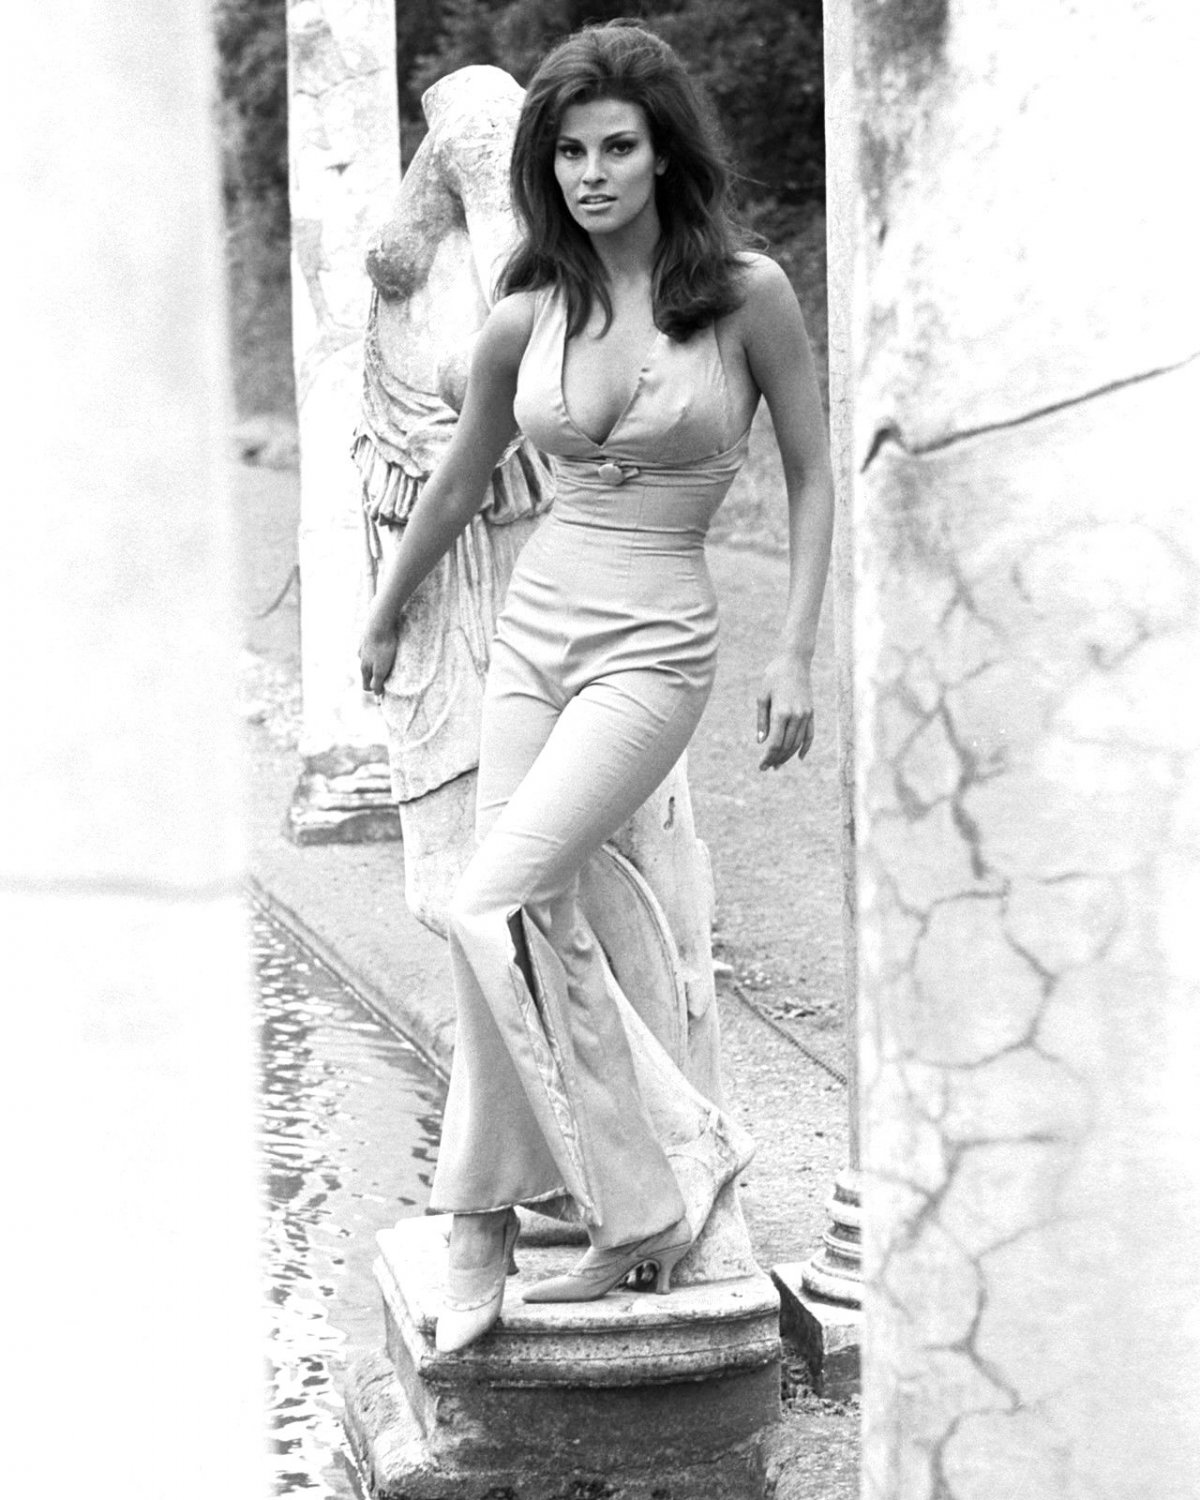 RAQUEL WELCH ACTRESS AND SEX-SYMBOL - 8X10 PUBLICITY PHOTO (SP-028)